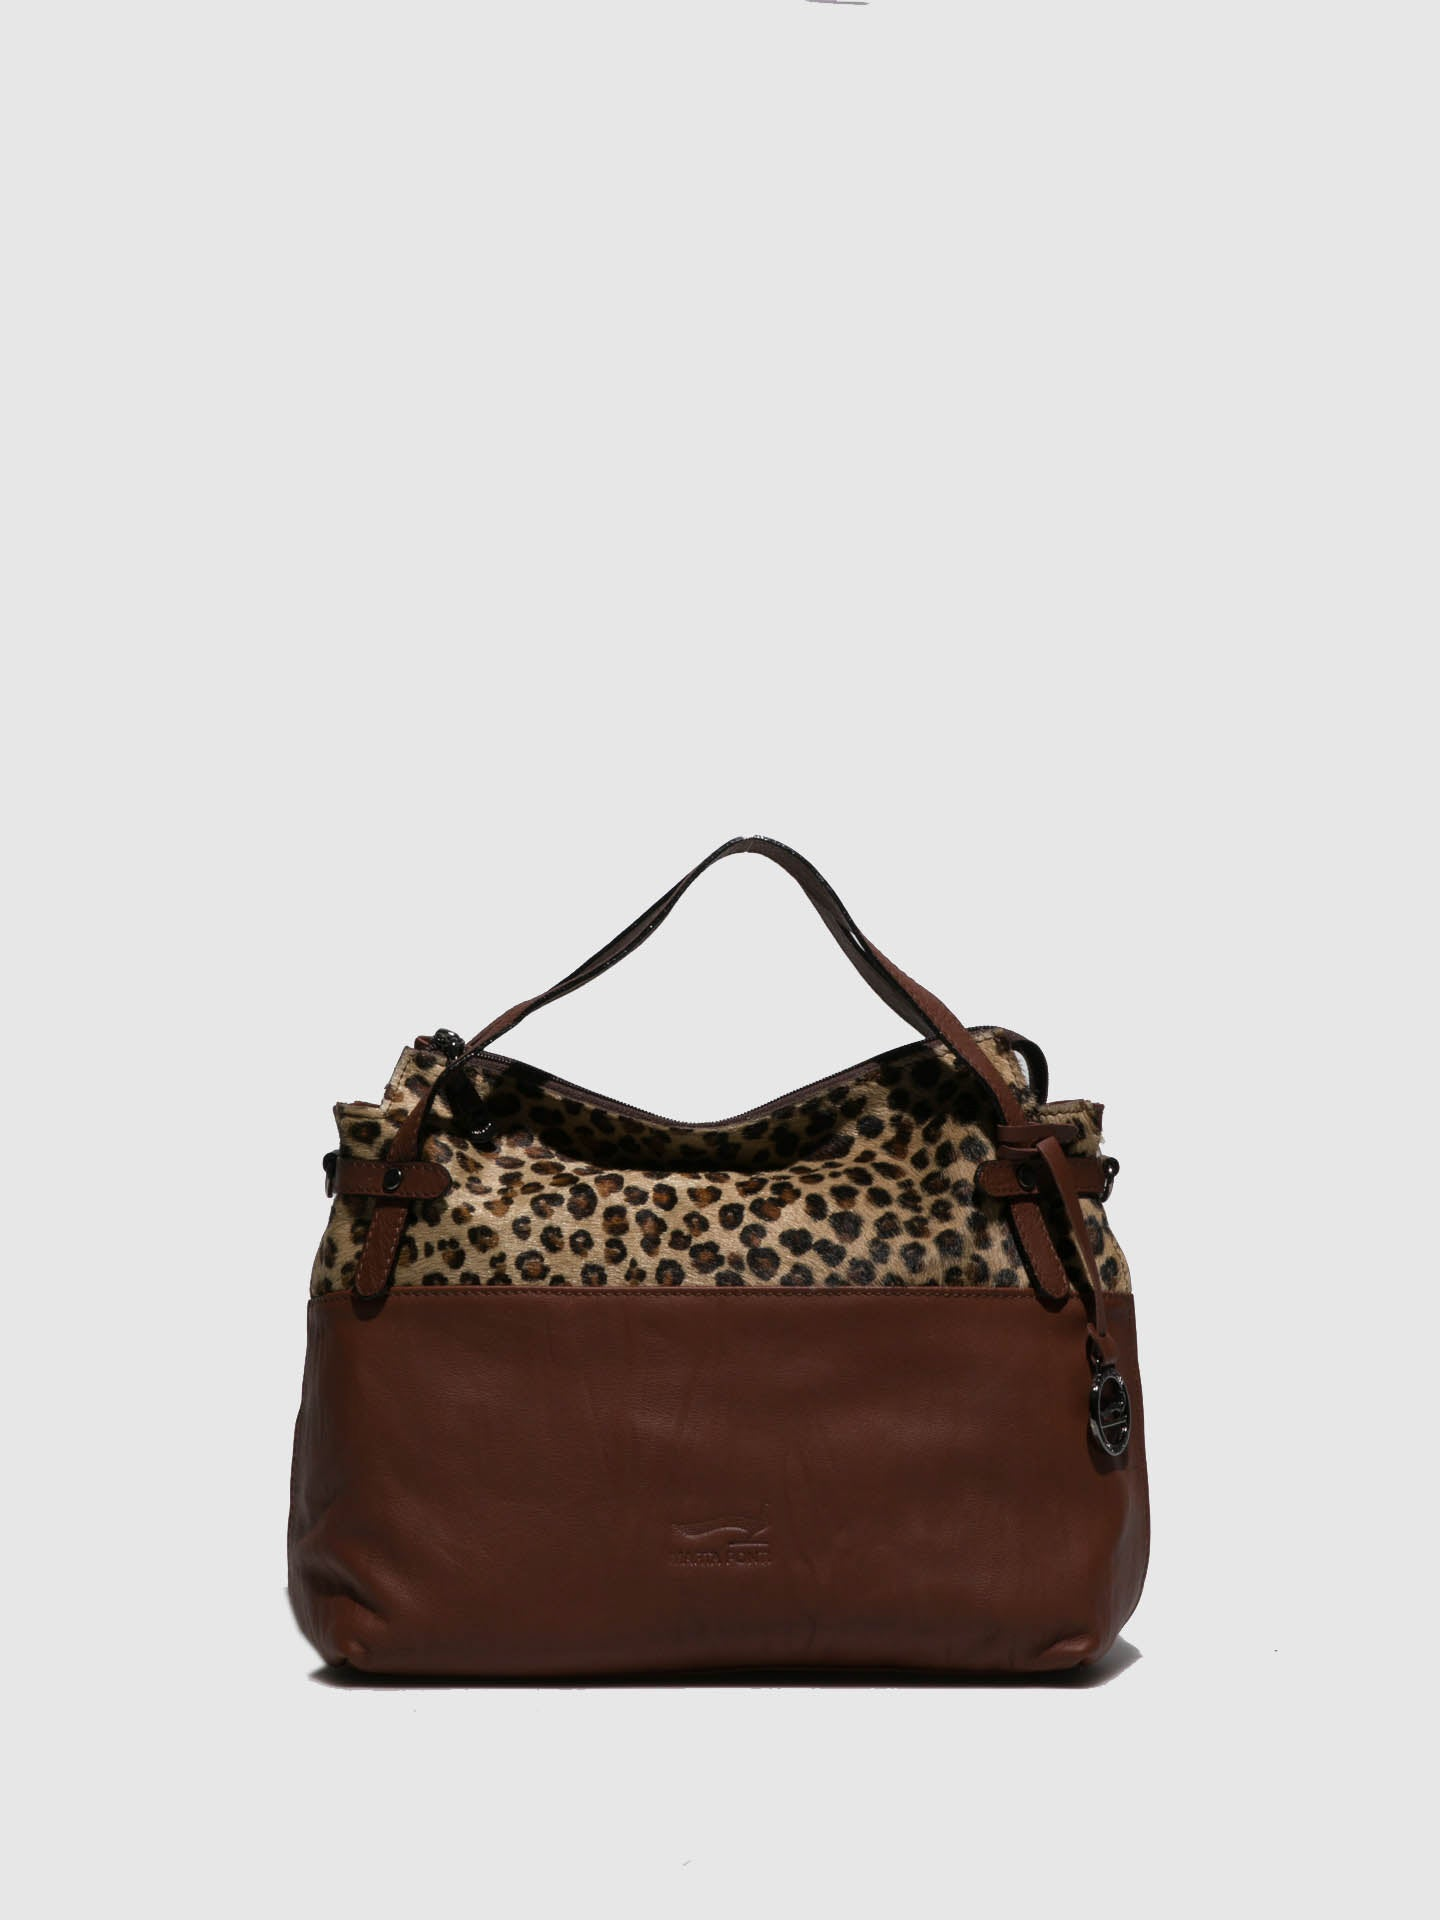 Marta Ponti Camel Leather Handbag